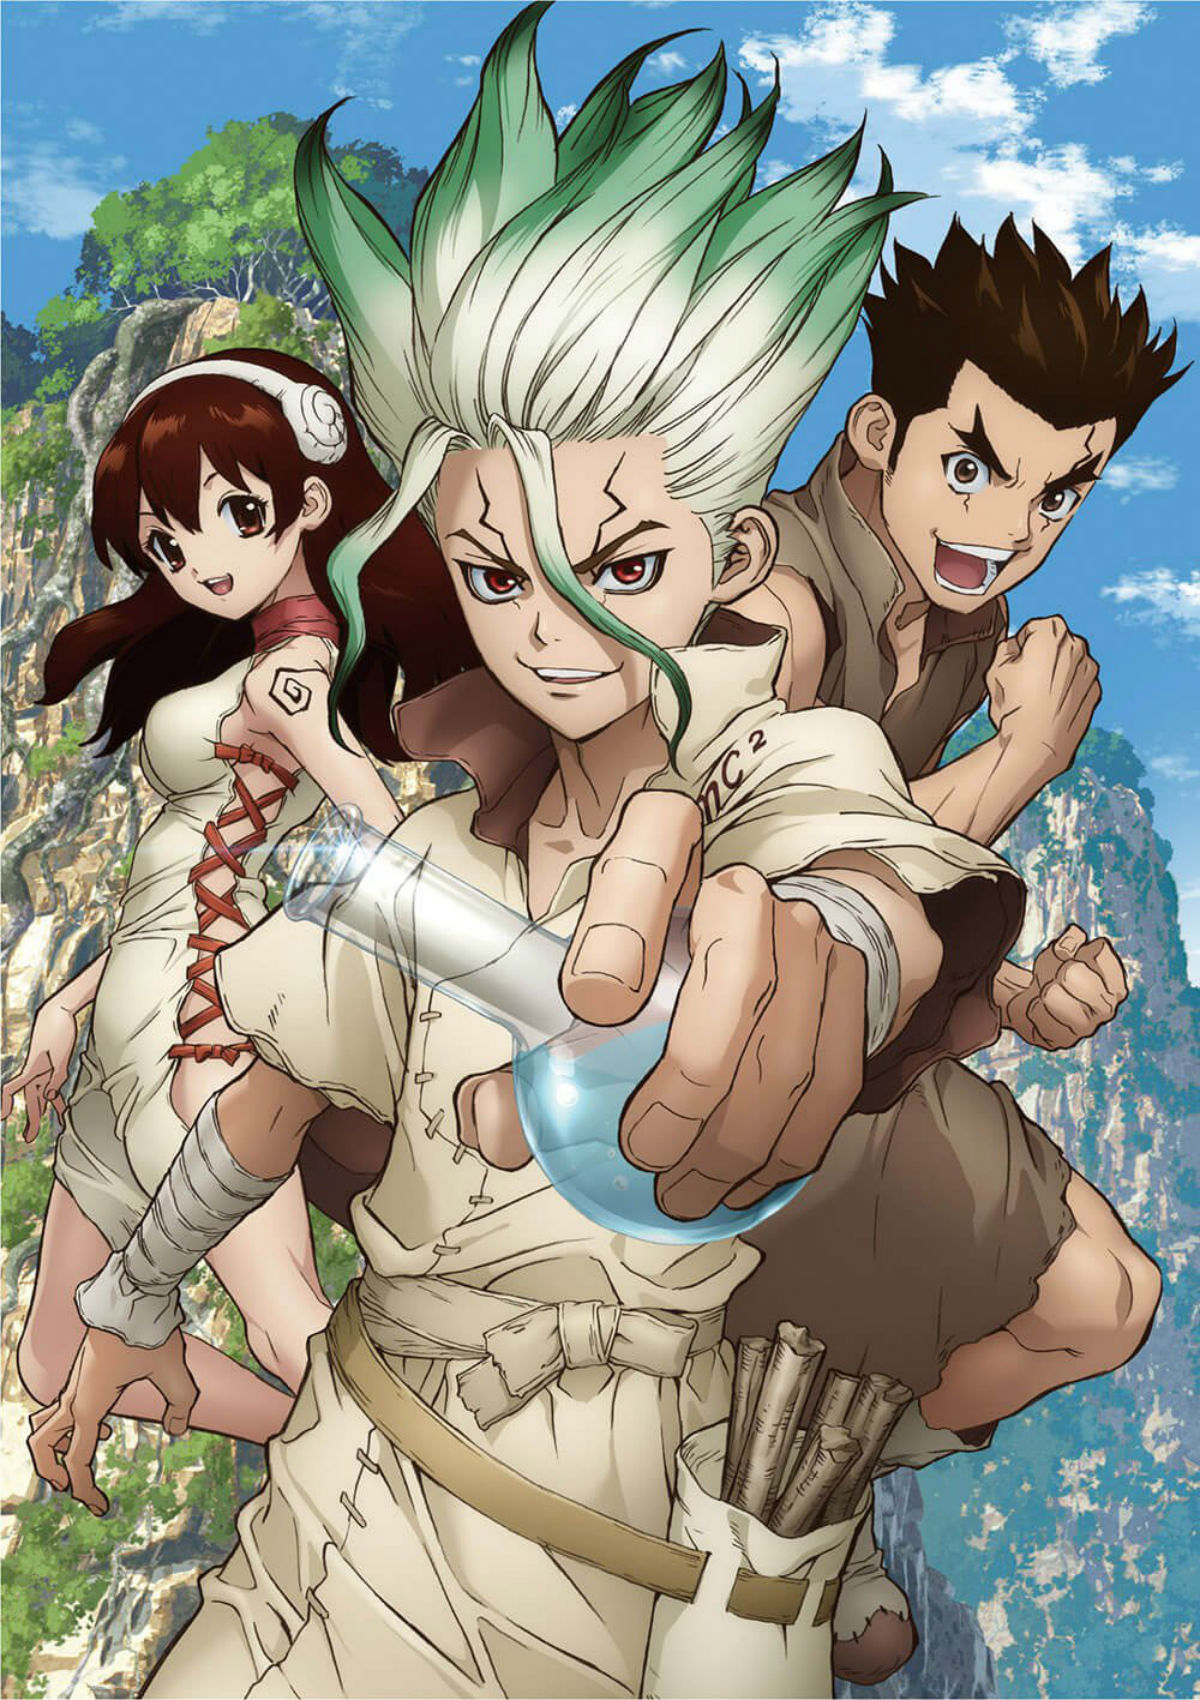 Dr. STONE Anime Blu-Ray DVD Disc Volume 1 Cover Art